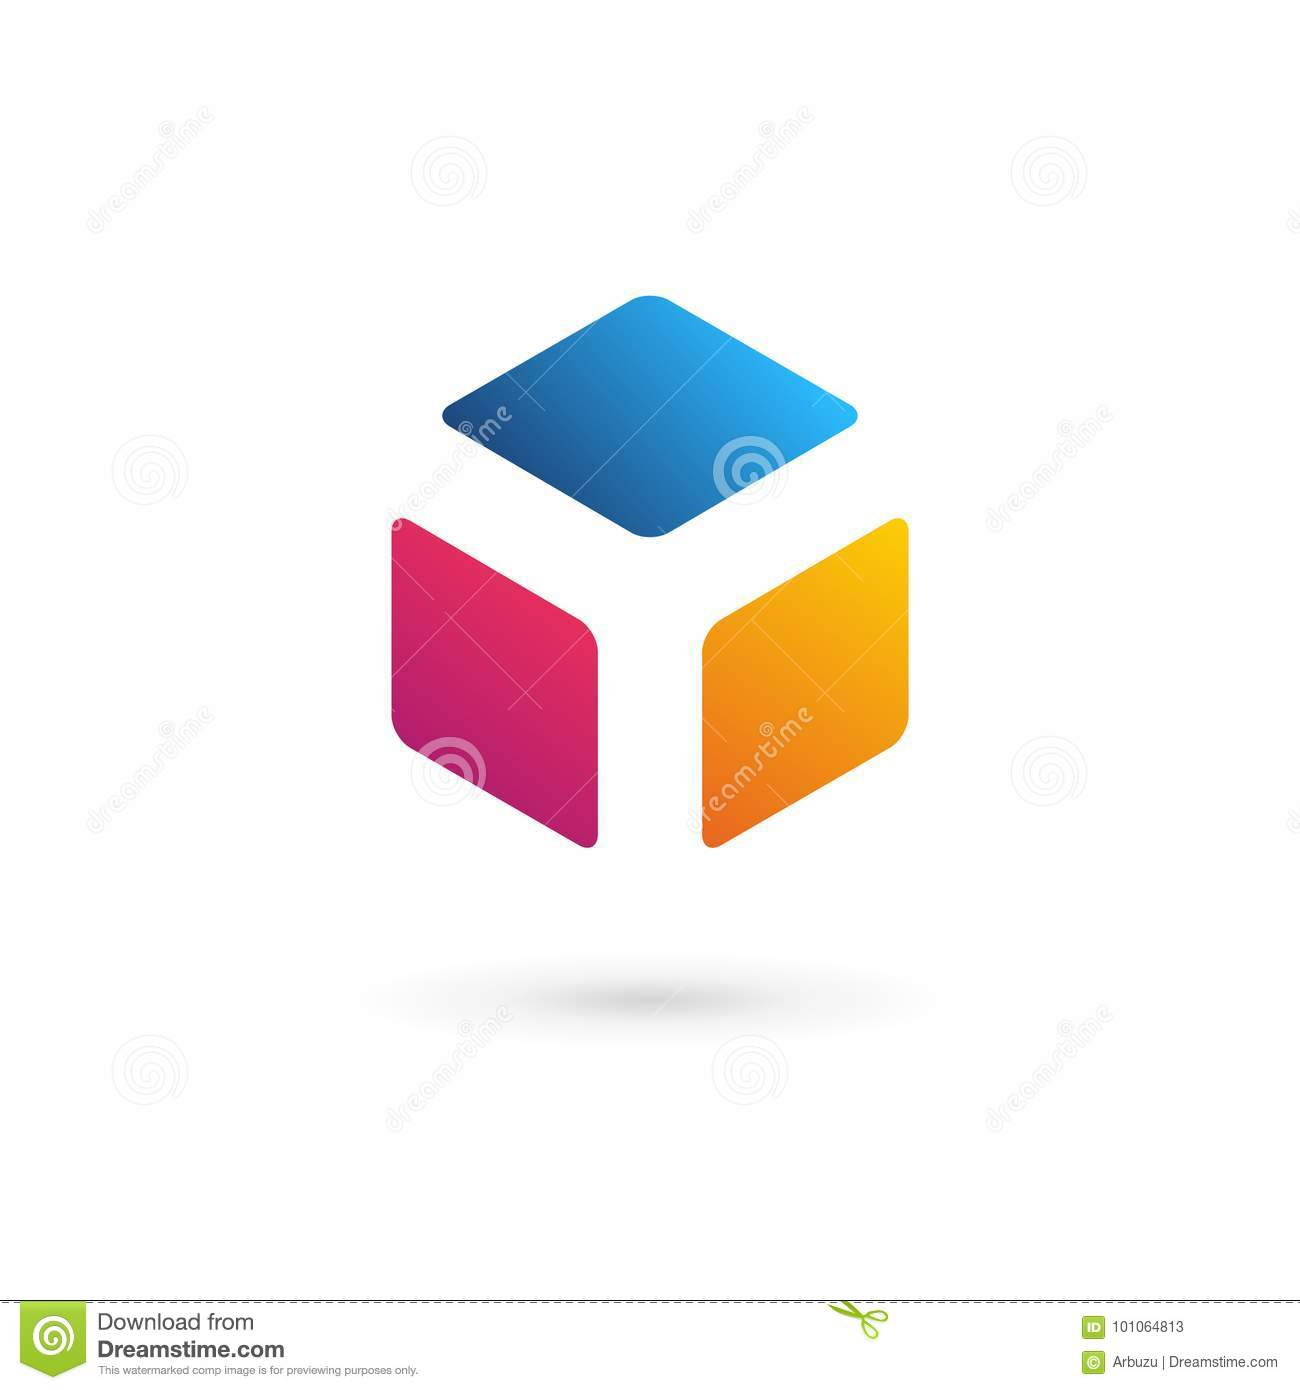 letter y cube logo icon design template elements